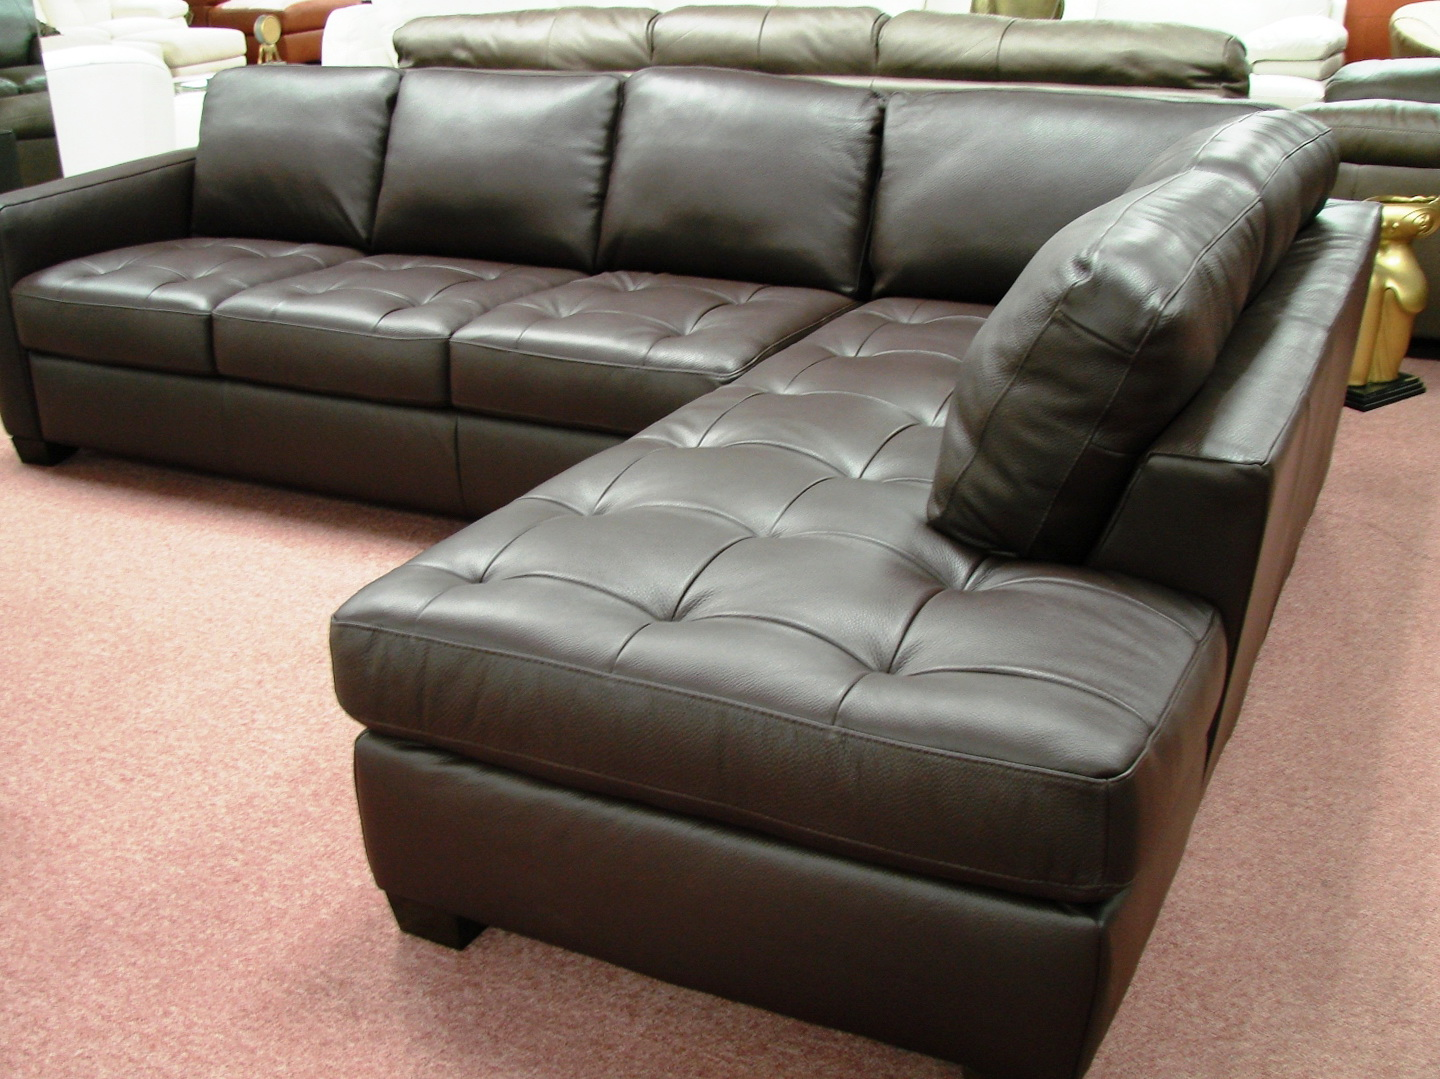 Natuzzi Leather Sofa Reviews